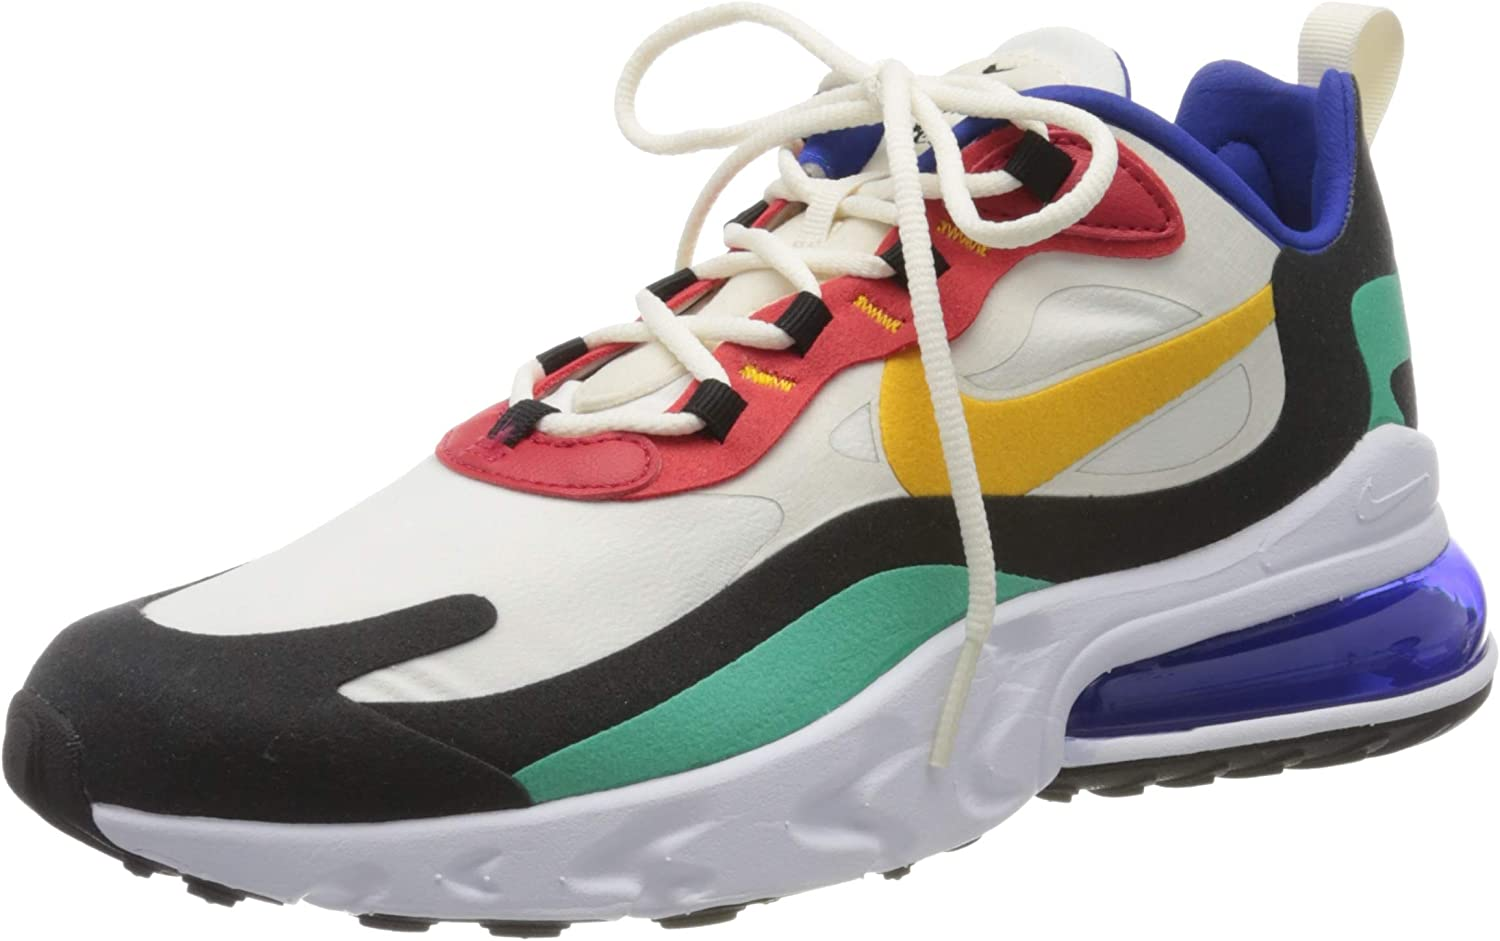 Triplicar Paloma director  Amazon.com | Nike Men's Air Max 270 React Phantom/University  Red/Black/University Gold AO4971-002 (Size: 9.5) | Road Running